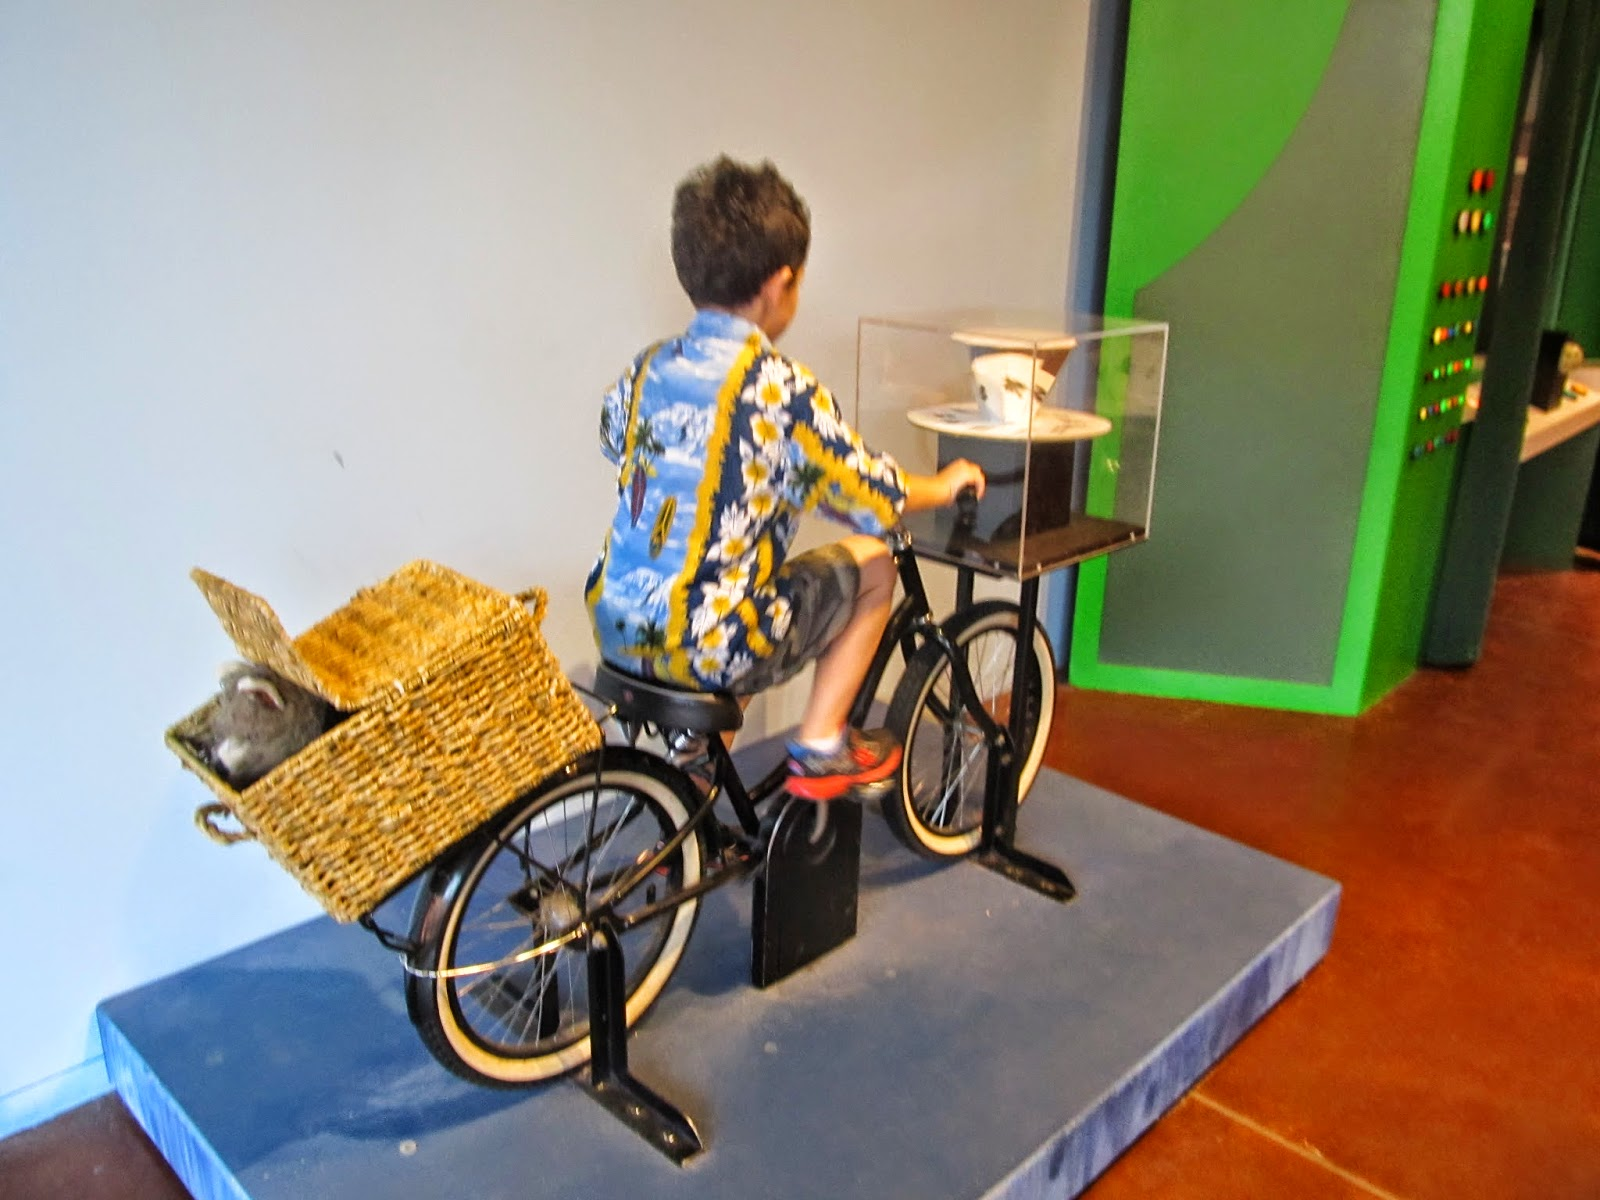 Exercise is good for you! (C) Darrell G. Wolfe - Child on stationary bike peddling to power the display.